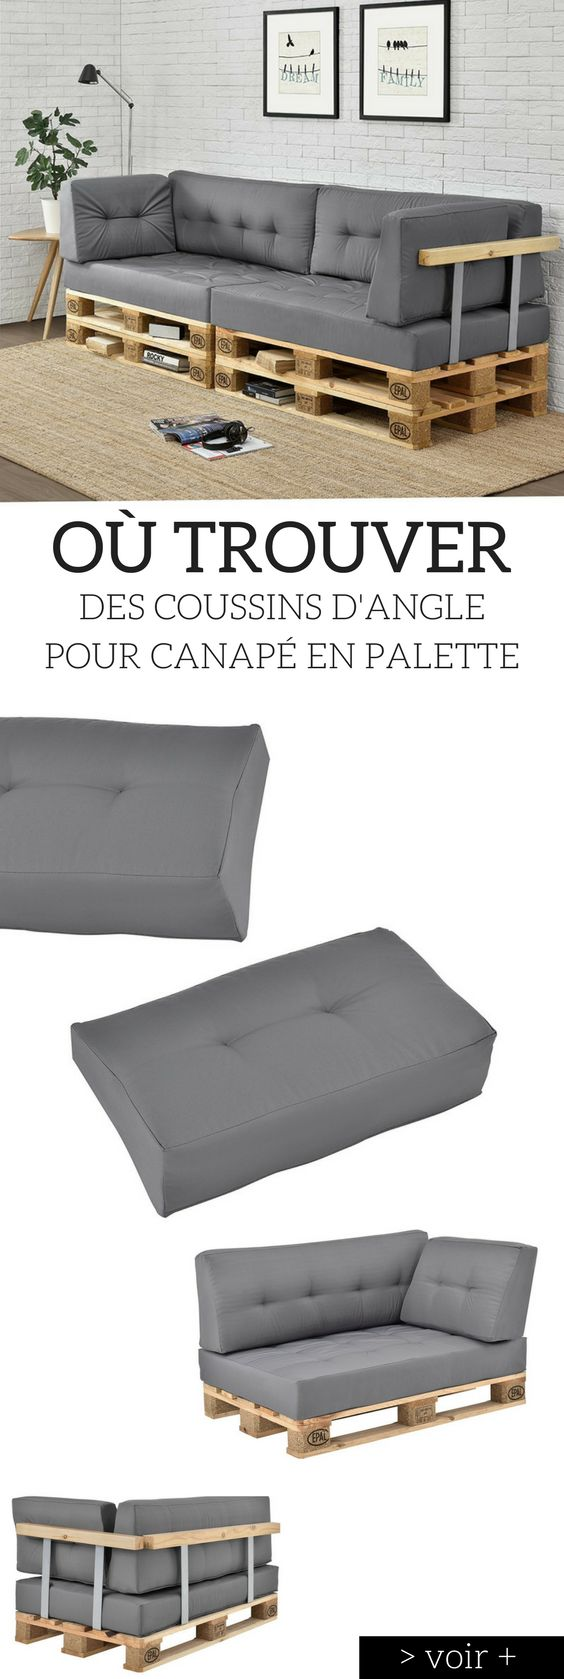 coussin pour canape palette maison design. Black Bedroom Furniture Sets. Home Design Ideas